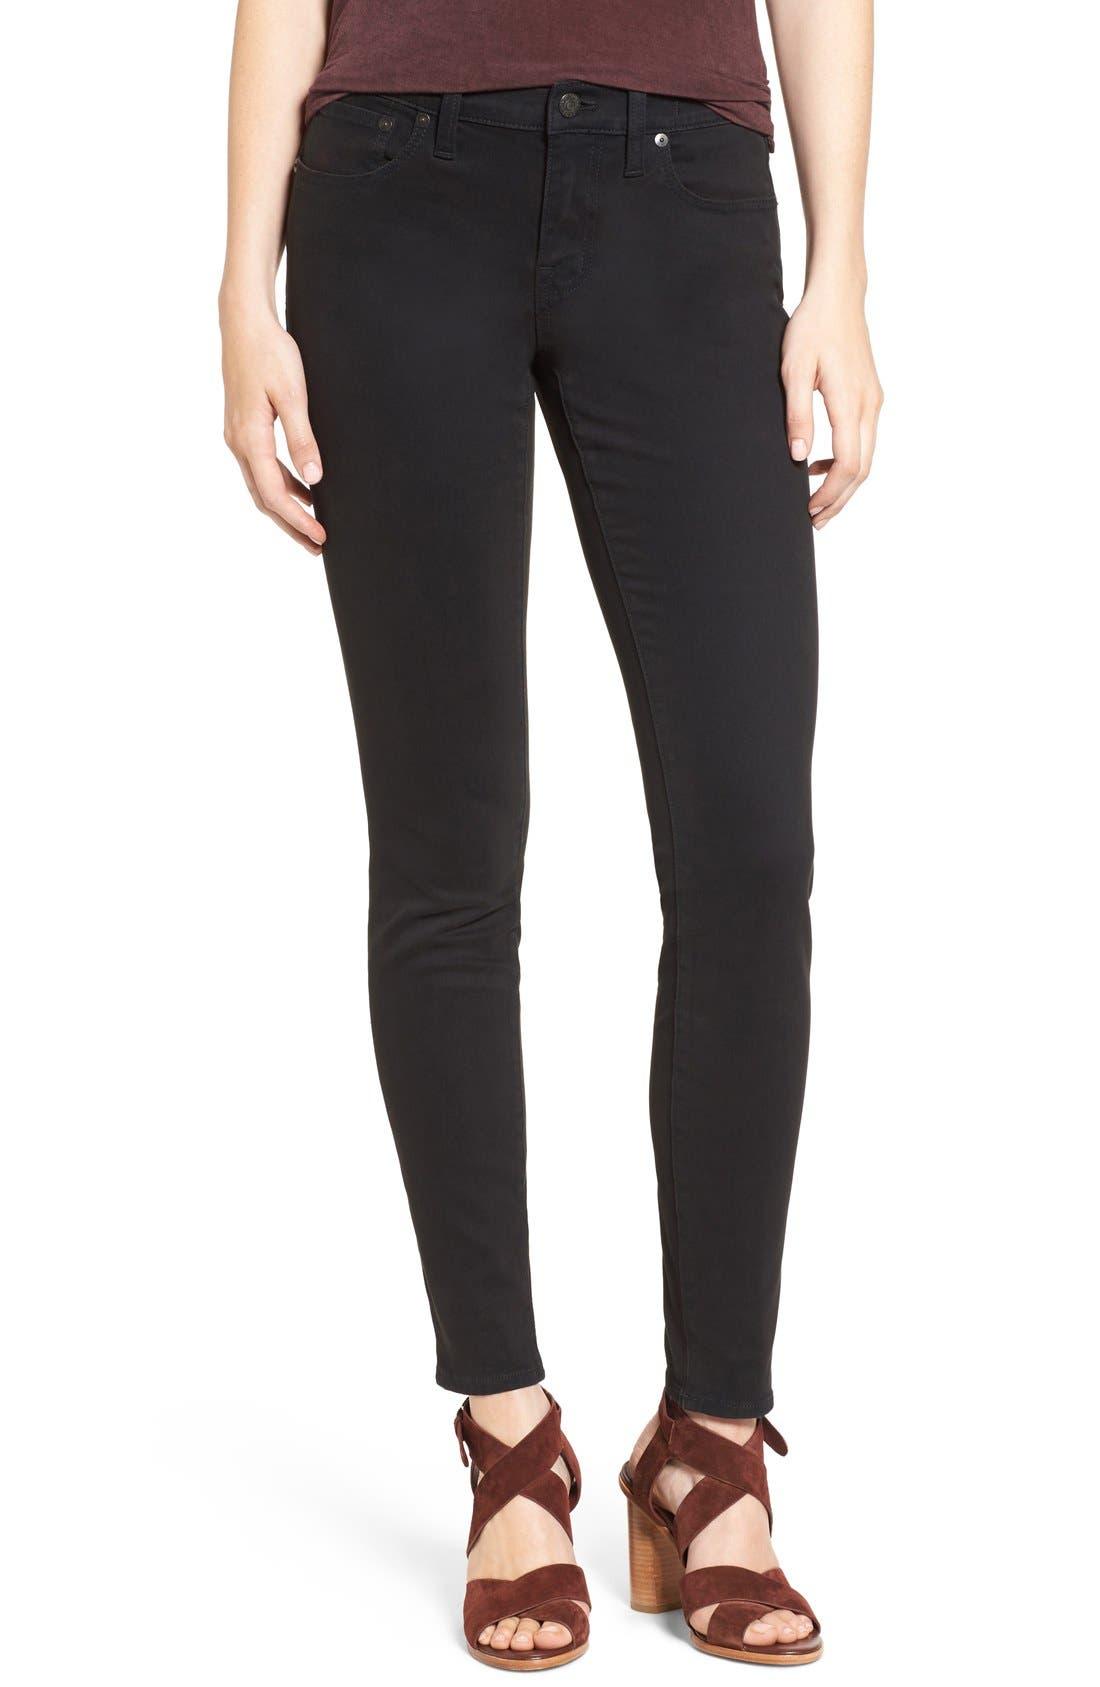 MADEWELL Garment Dyed Skinny Jeans, Main, color, 001